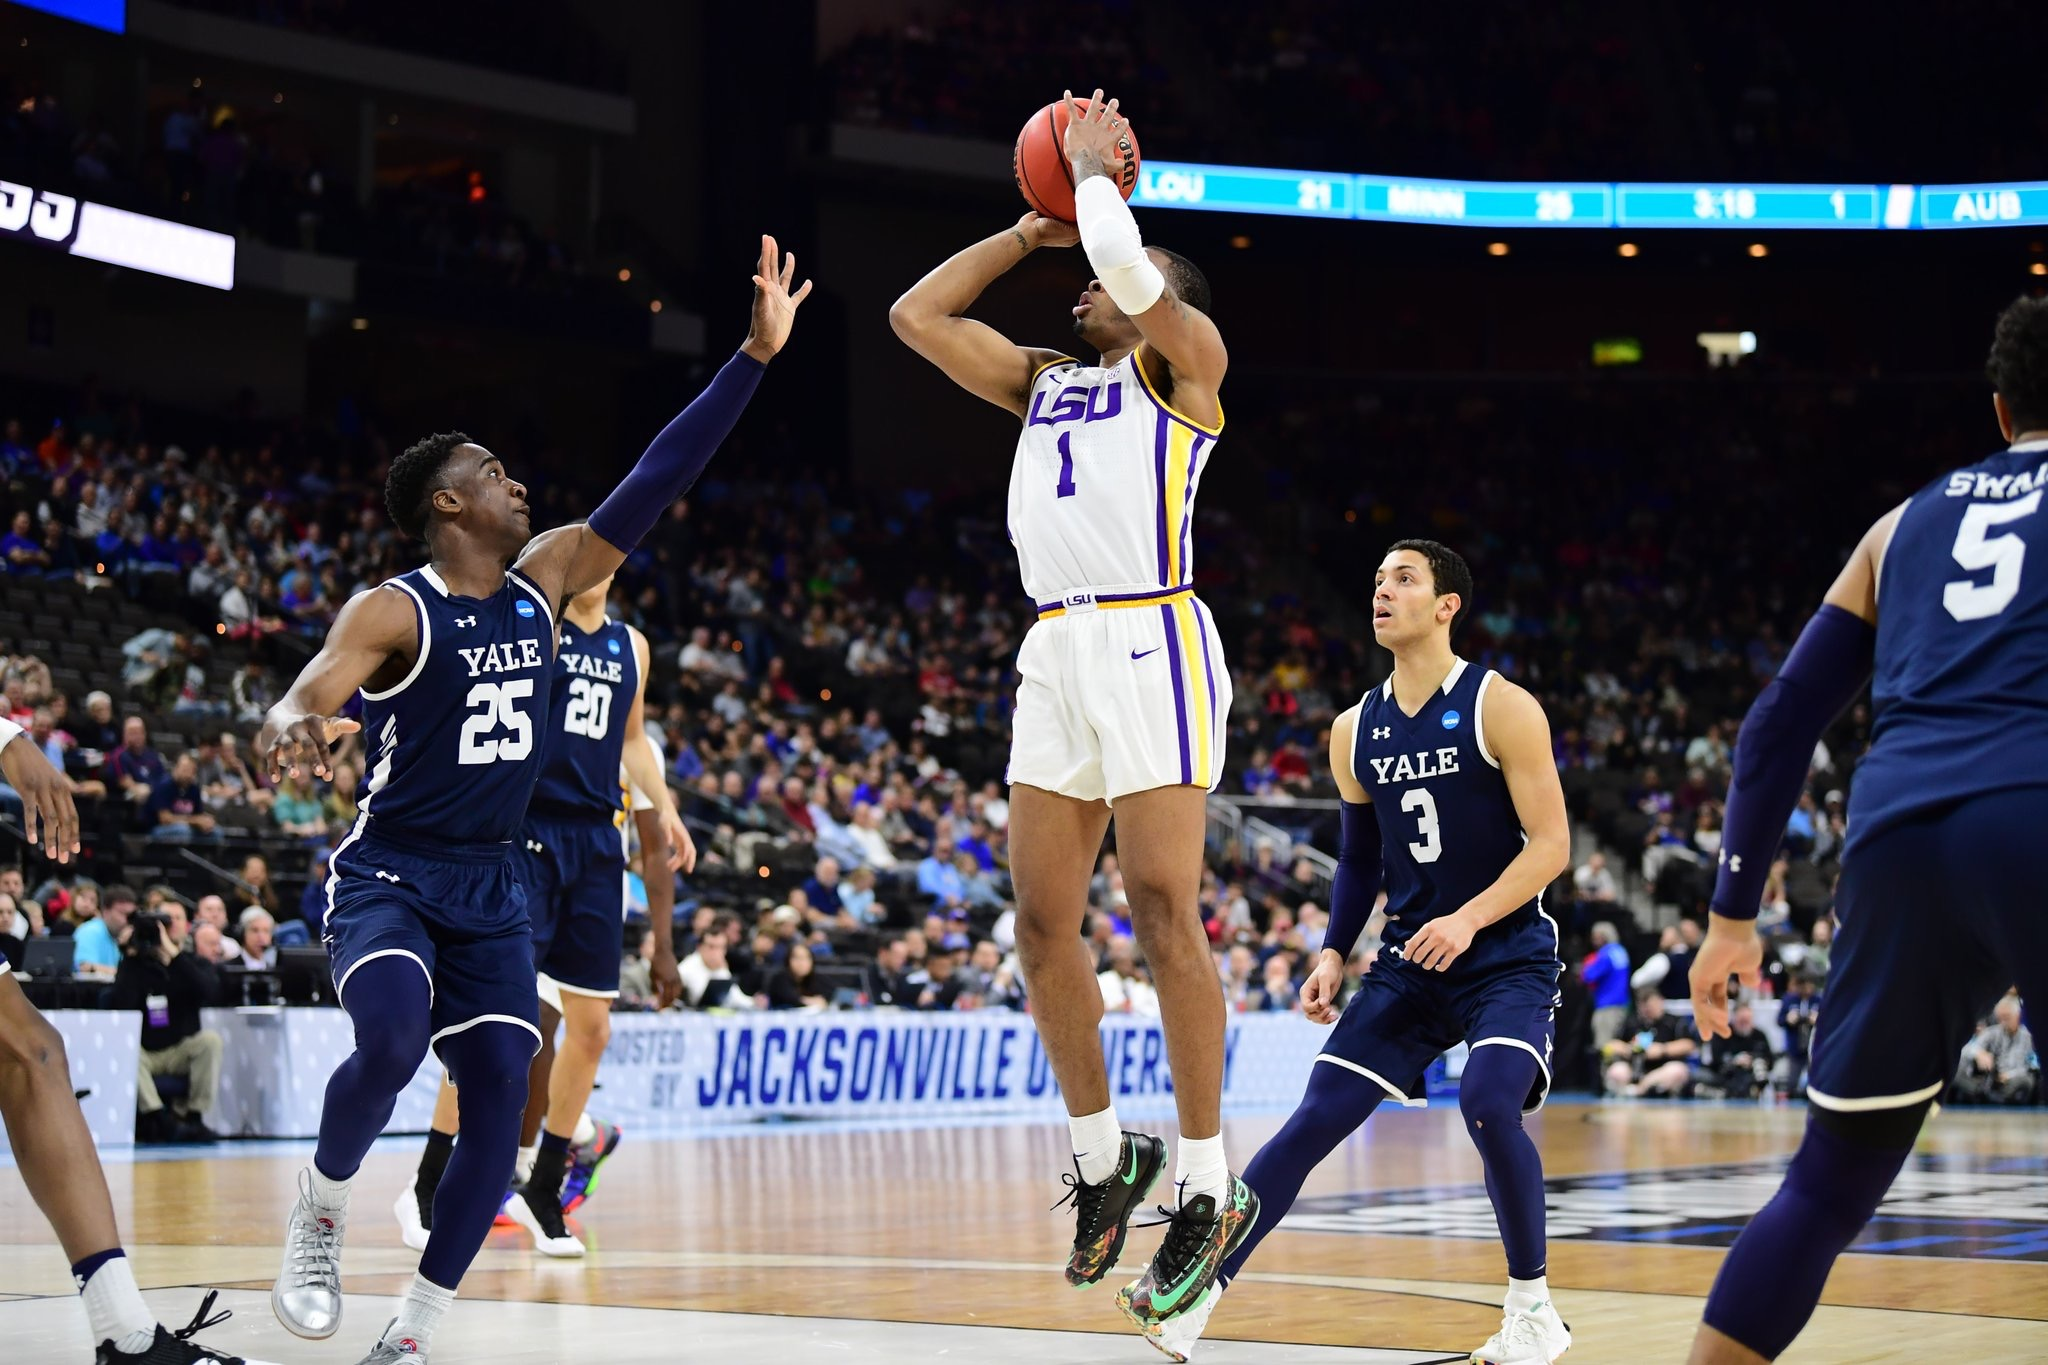 LSU holds off Yale to advance in the NCAA Tournament